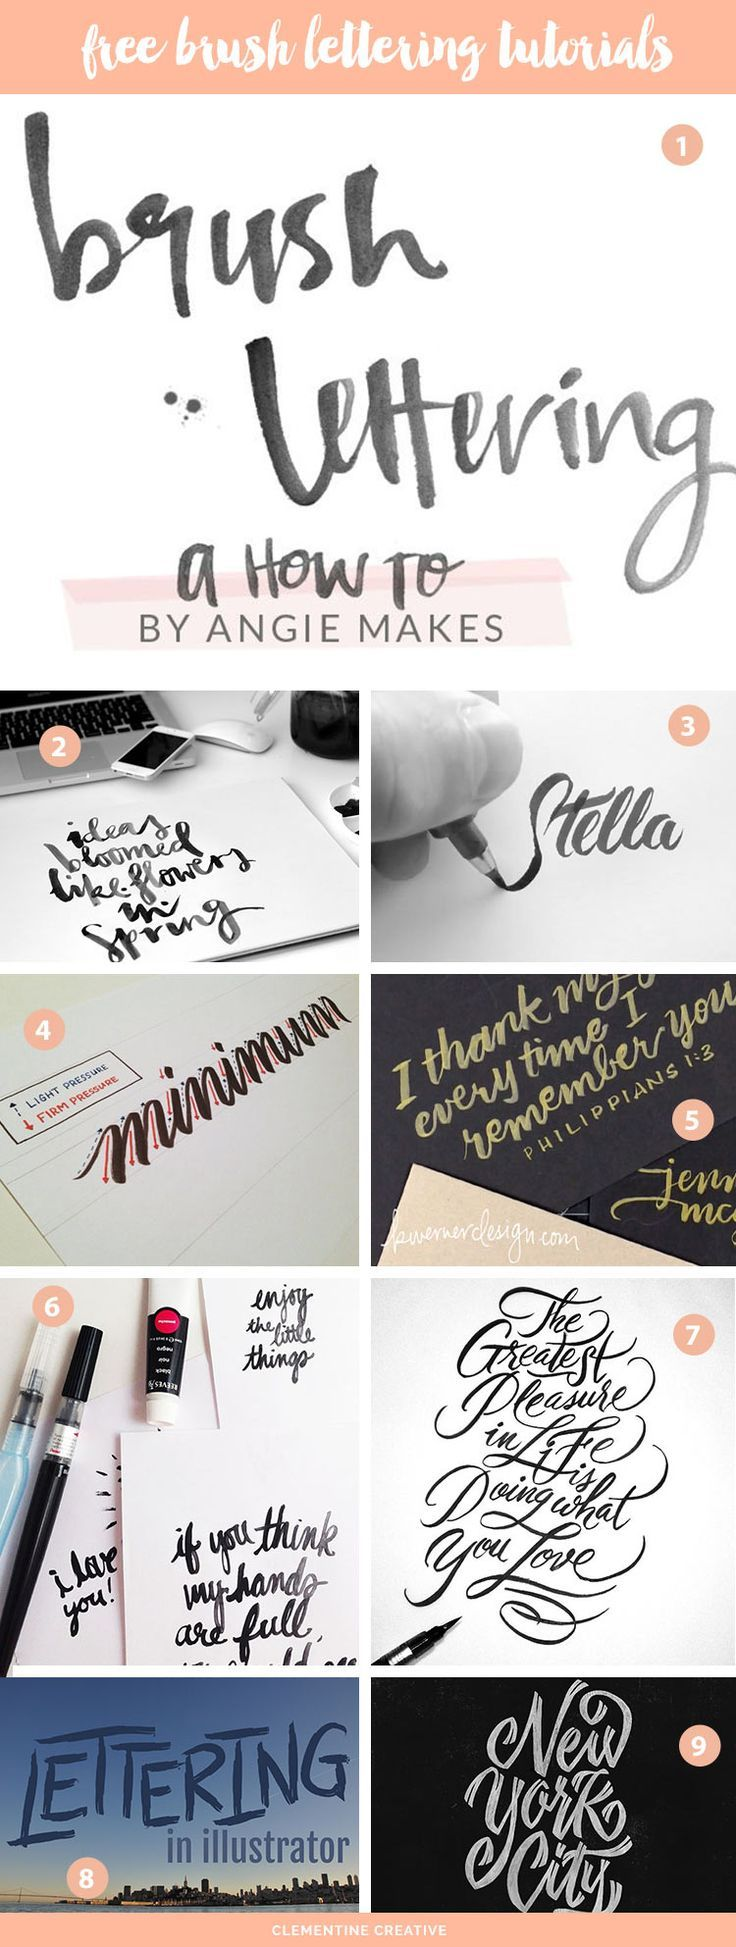 A Collection of Hand Lettering Tutorials and Resources